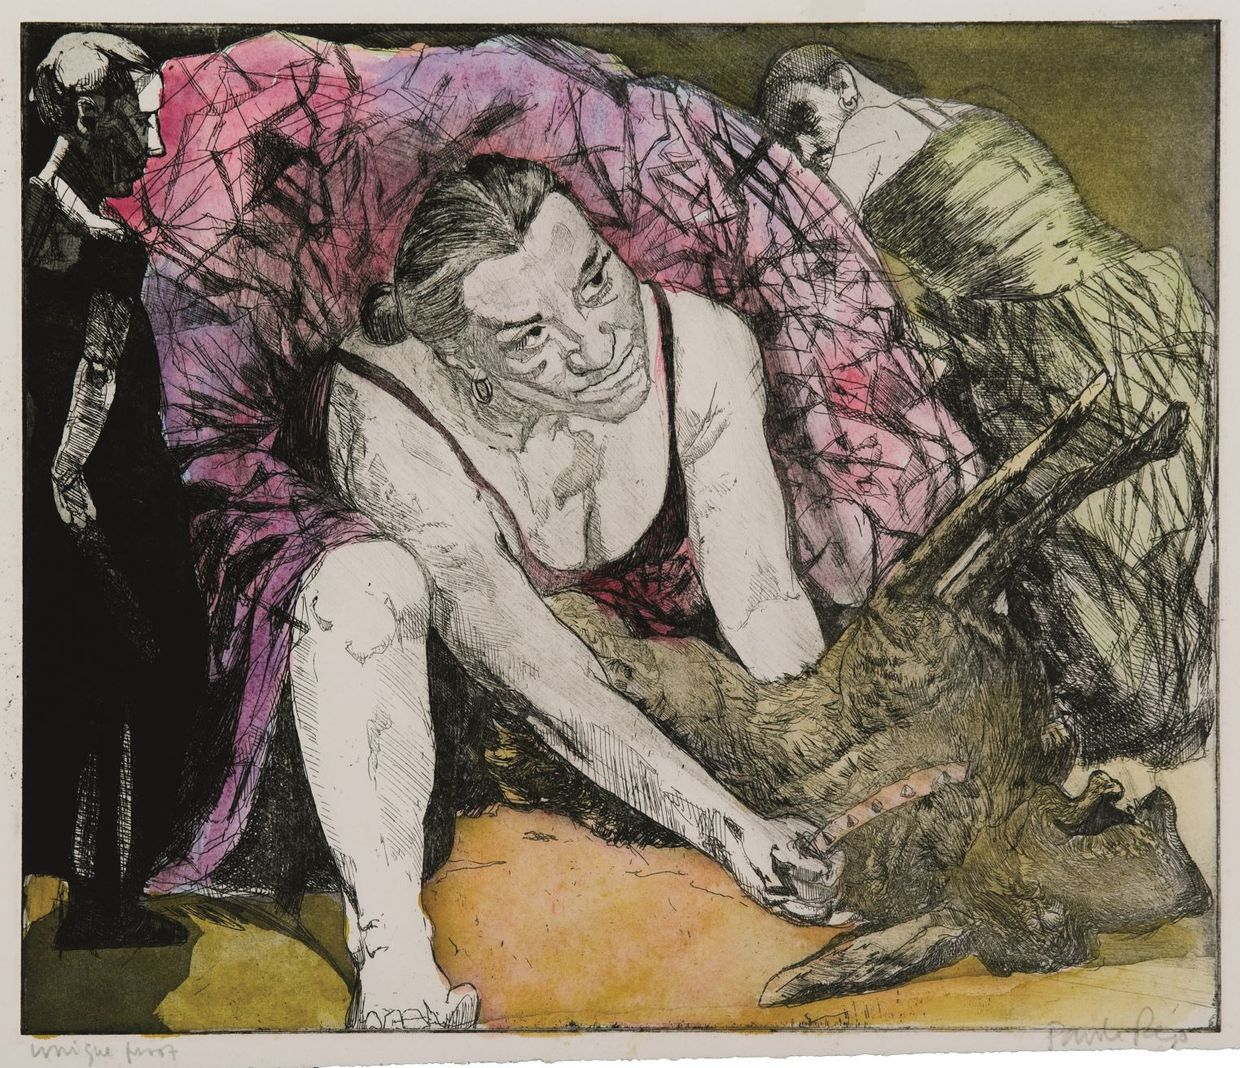 Two Women Eviscerating a Dog (1996), de Paula Rego